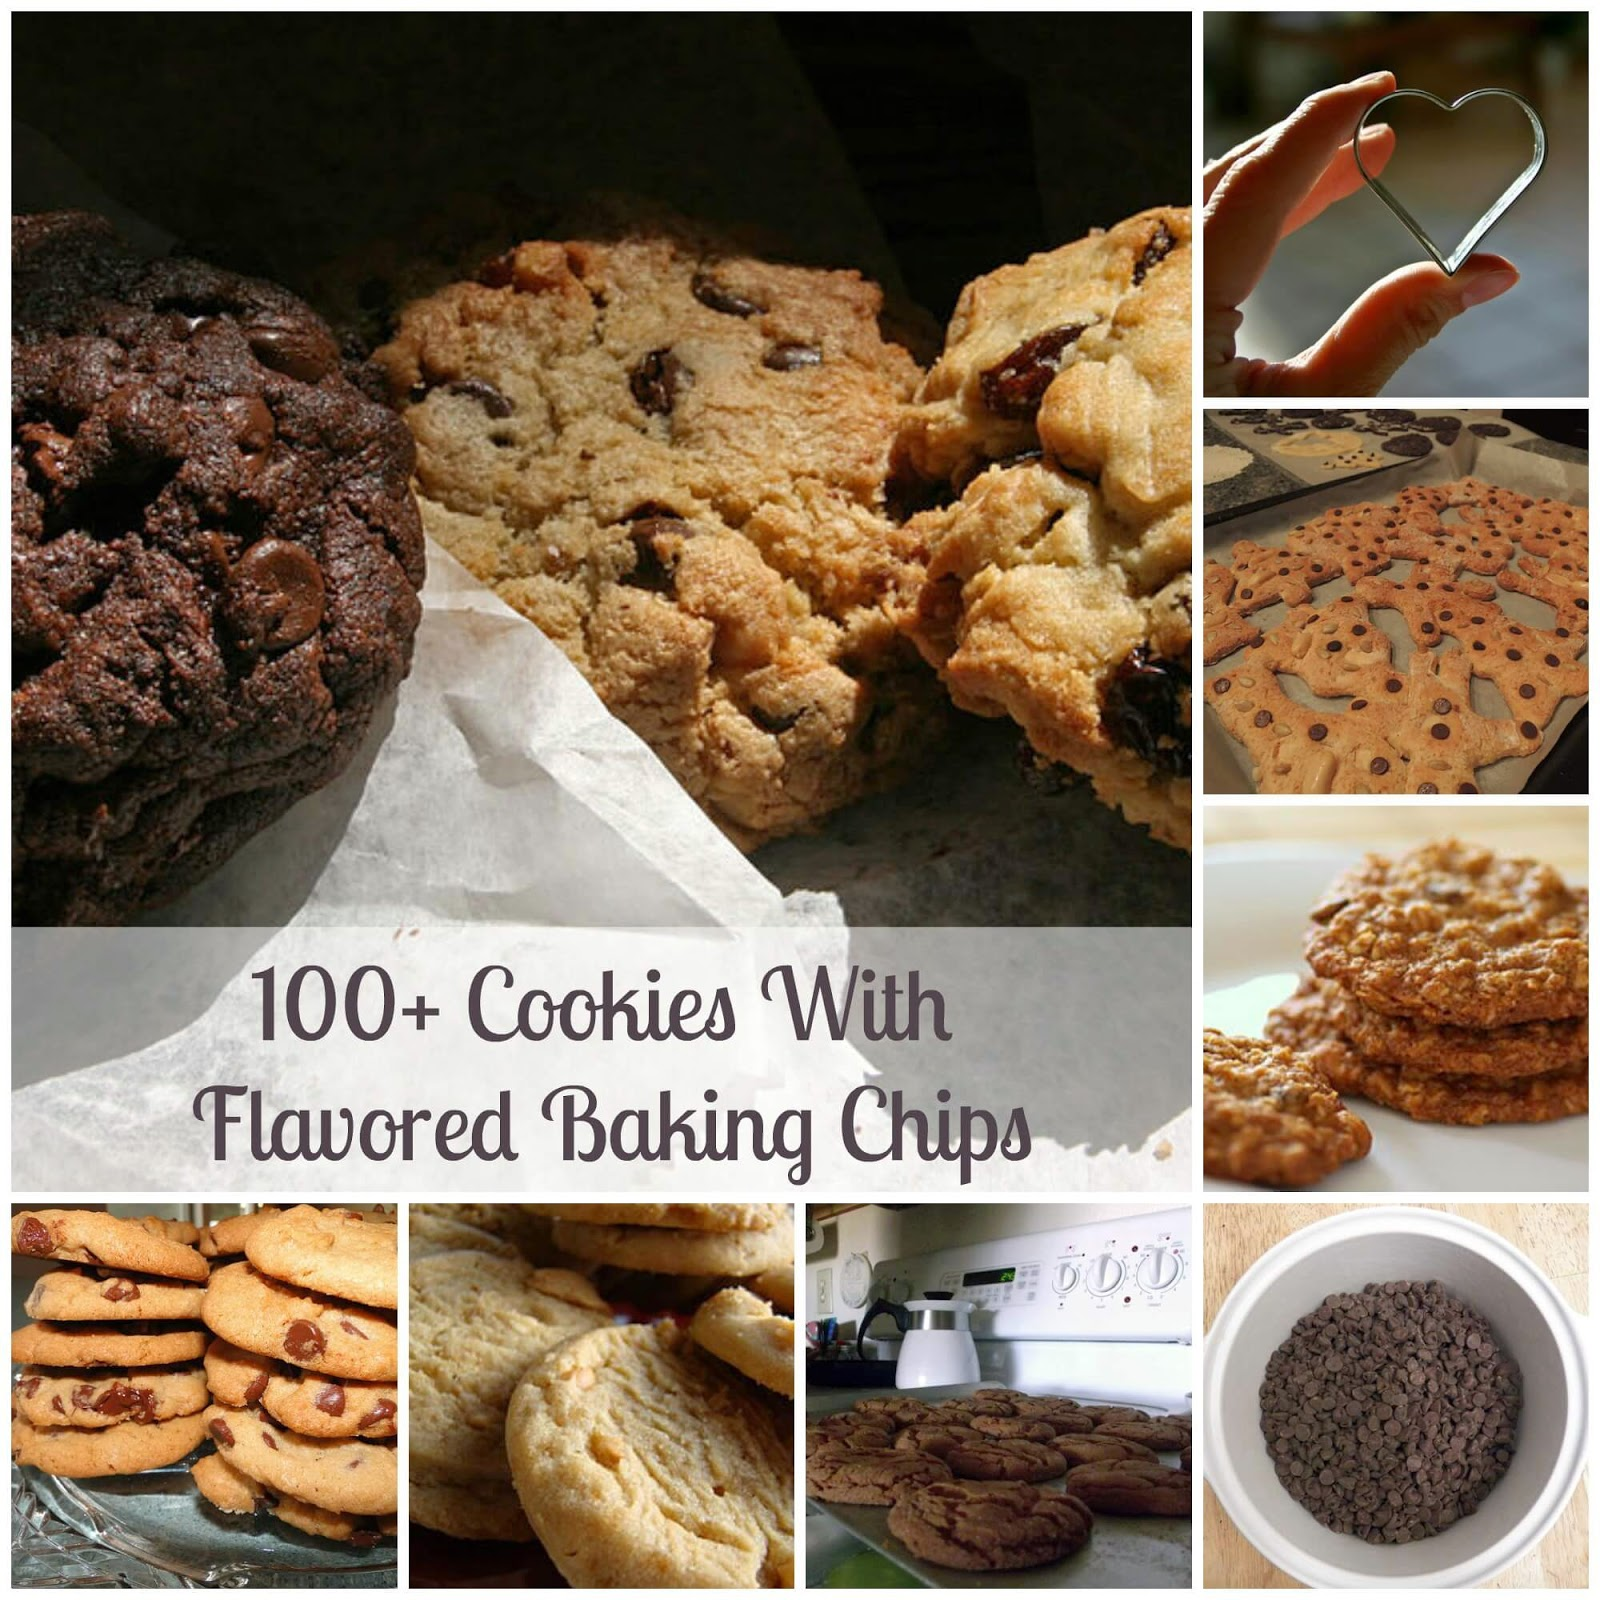 100+ Cookies With Flavored Baking Chips | Becky Cooks Lightly #cookies #bakingchips